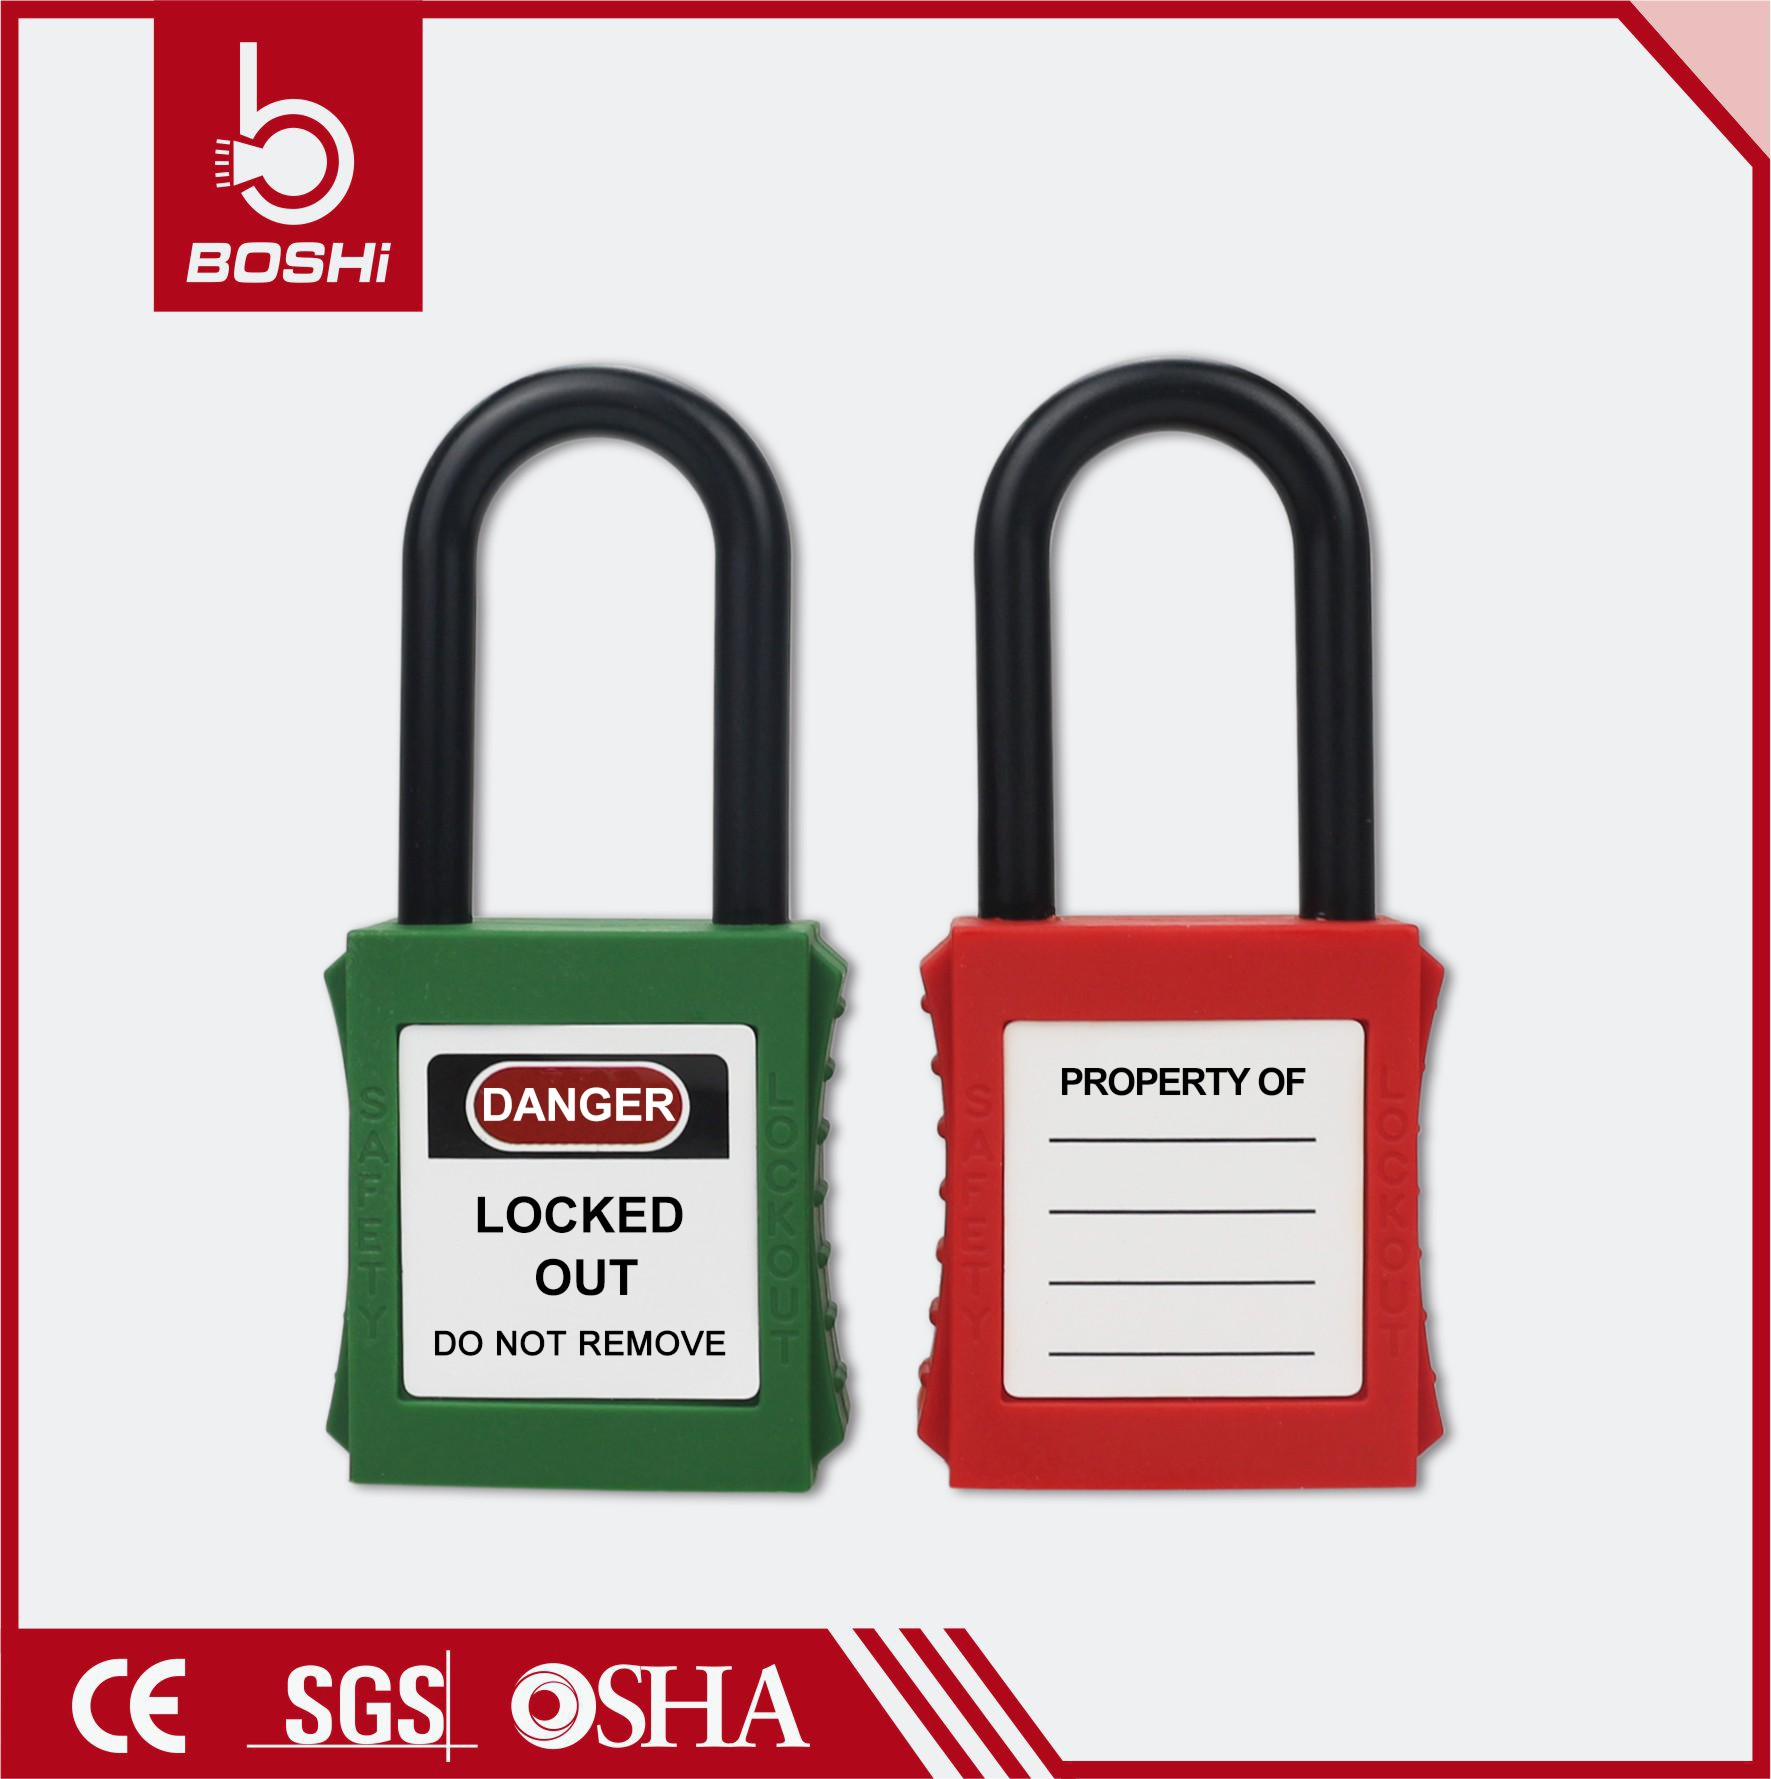 38mm Nylon Shackle Dust-Proof Safety Padlock BD-G11